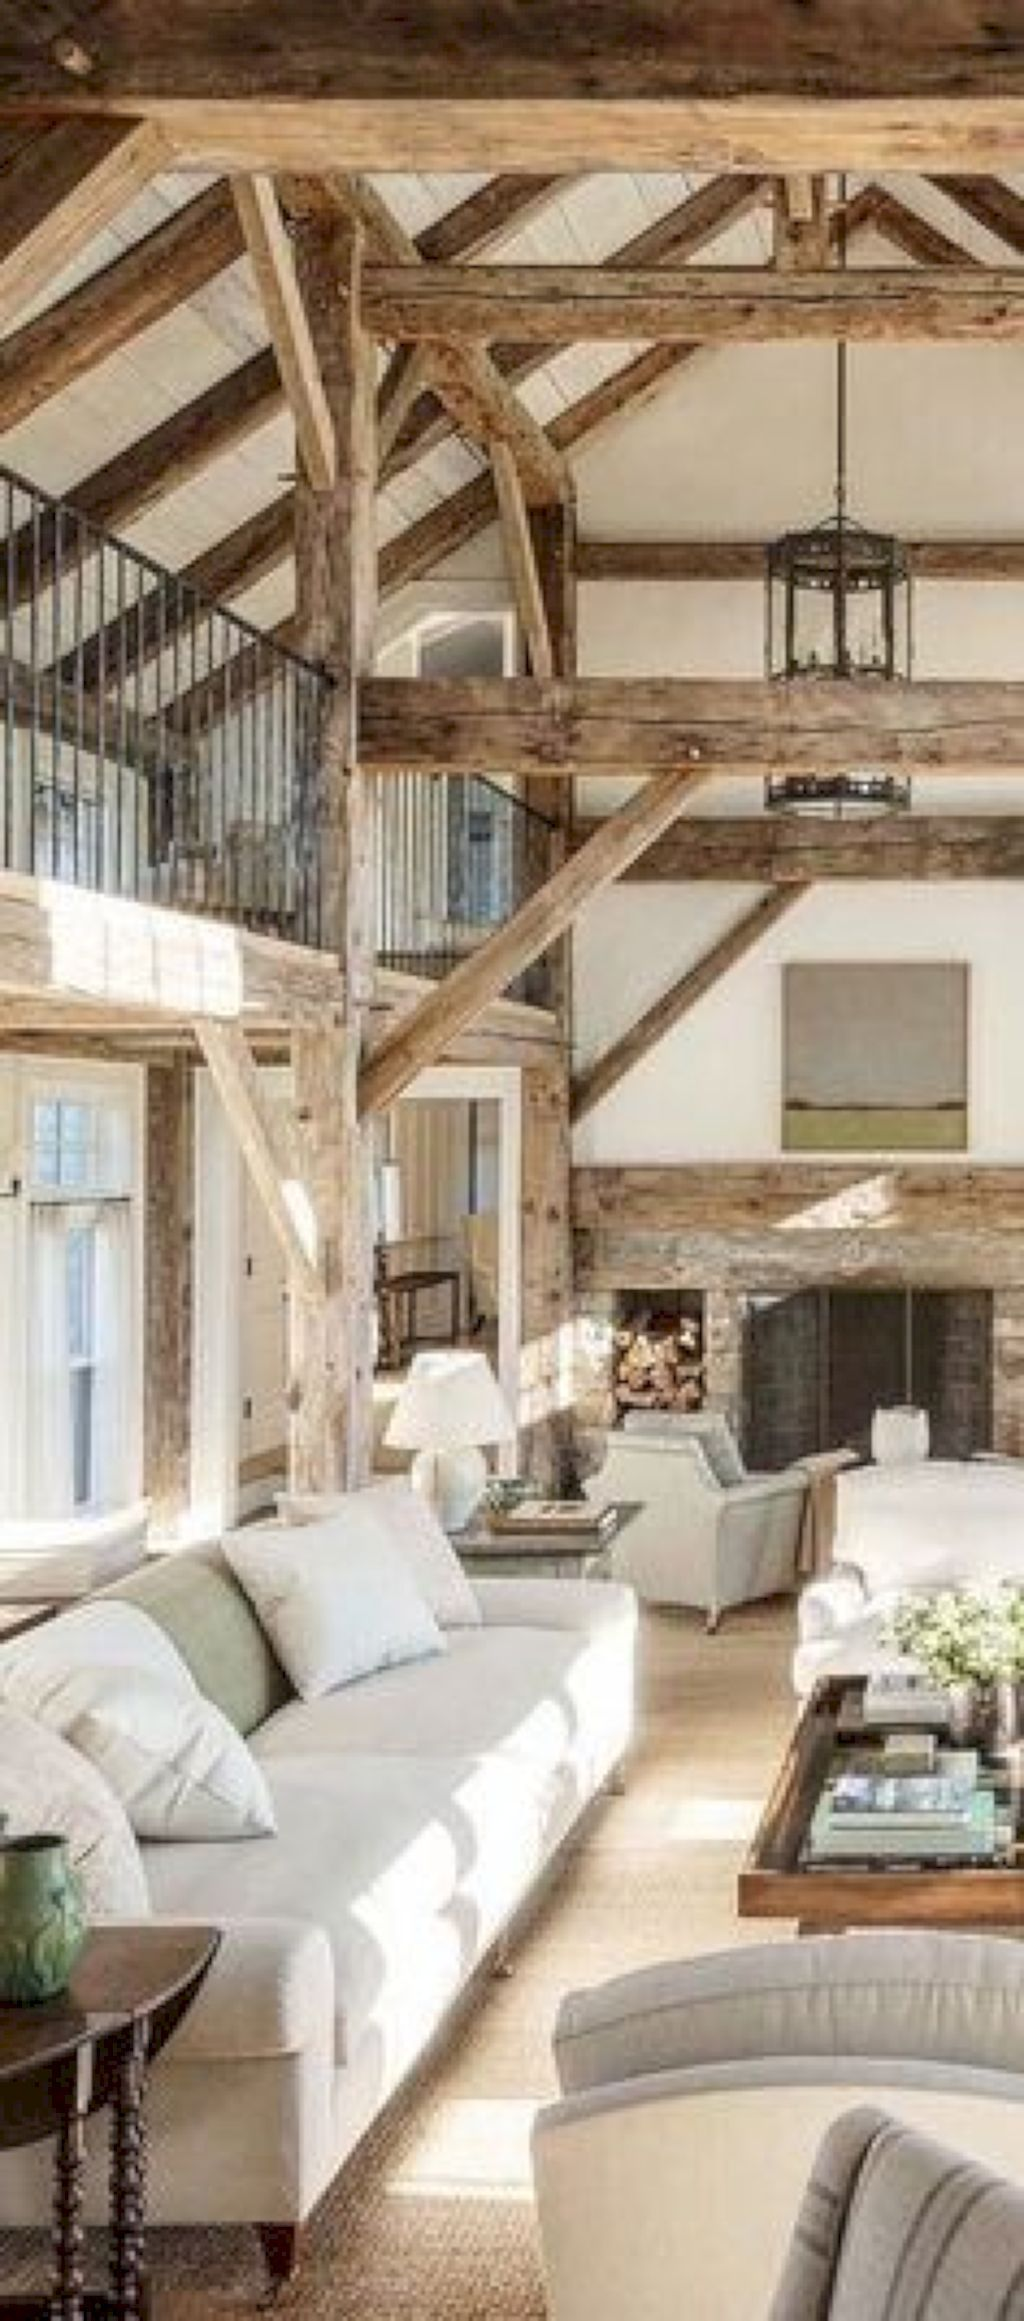 30 Rustic Farmhouse Living Room Design and Decor Ideas for Your Home images